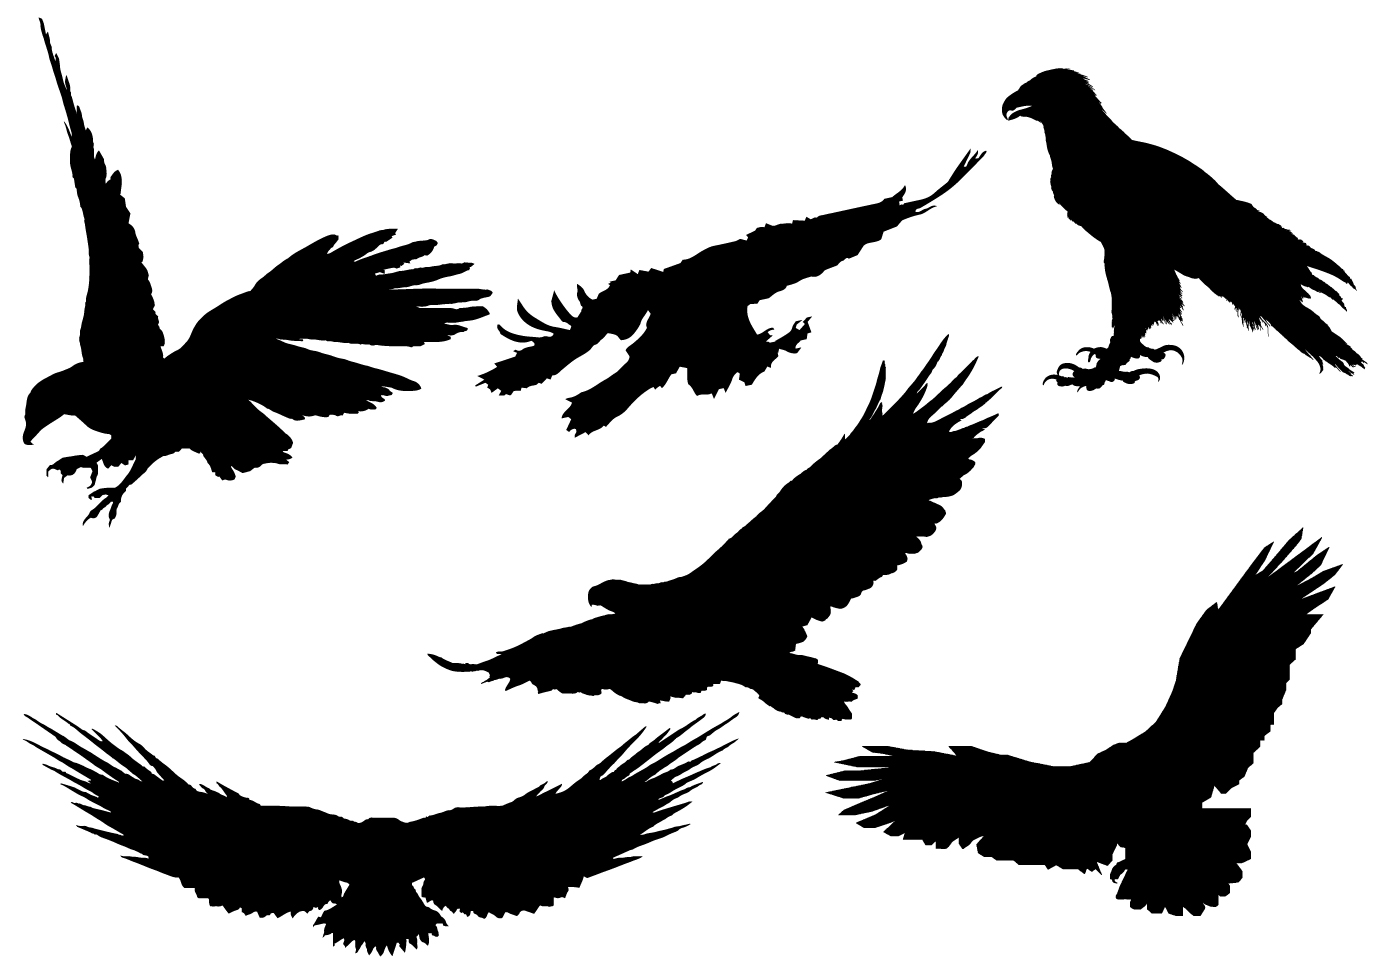 1400x980 Flying Silhoutte Clipart Images